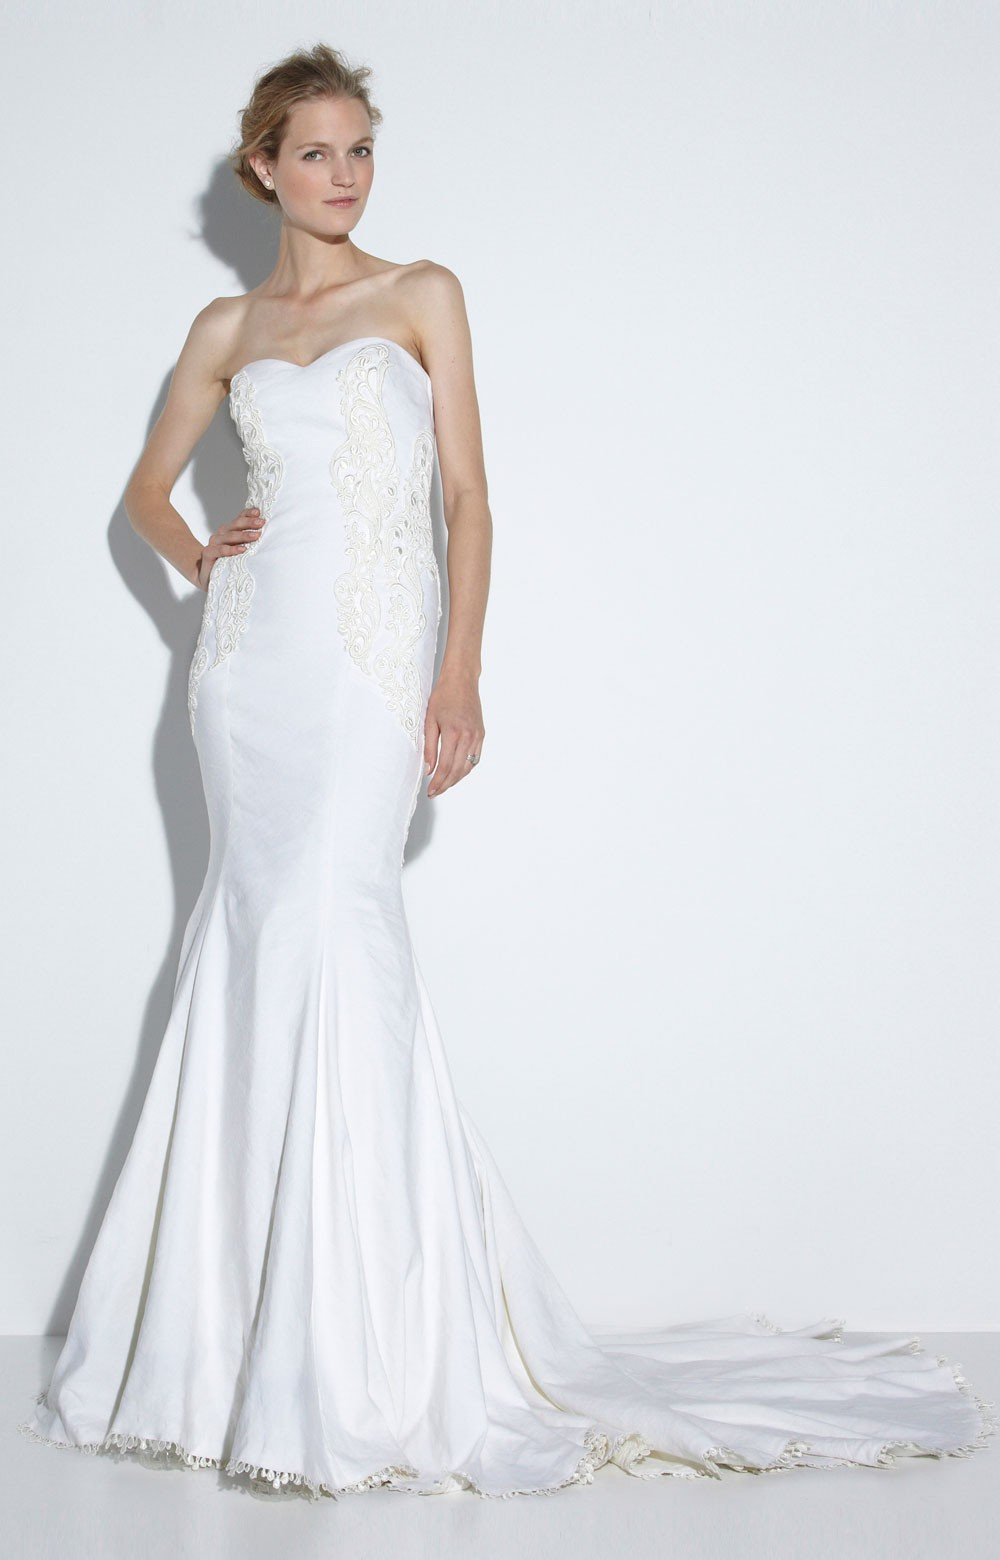 Nicole miller meme bridal gown in white ivory lyst for Nicole miller dresses wedding